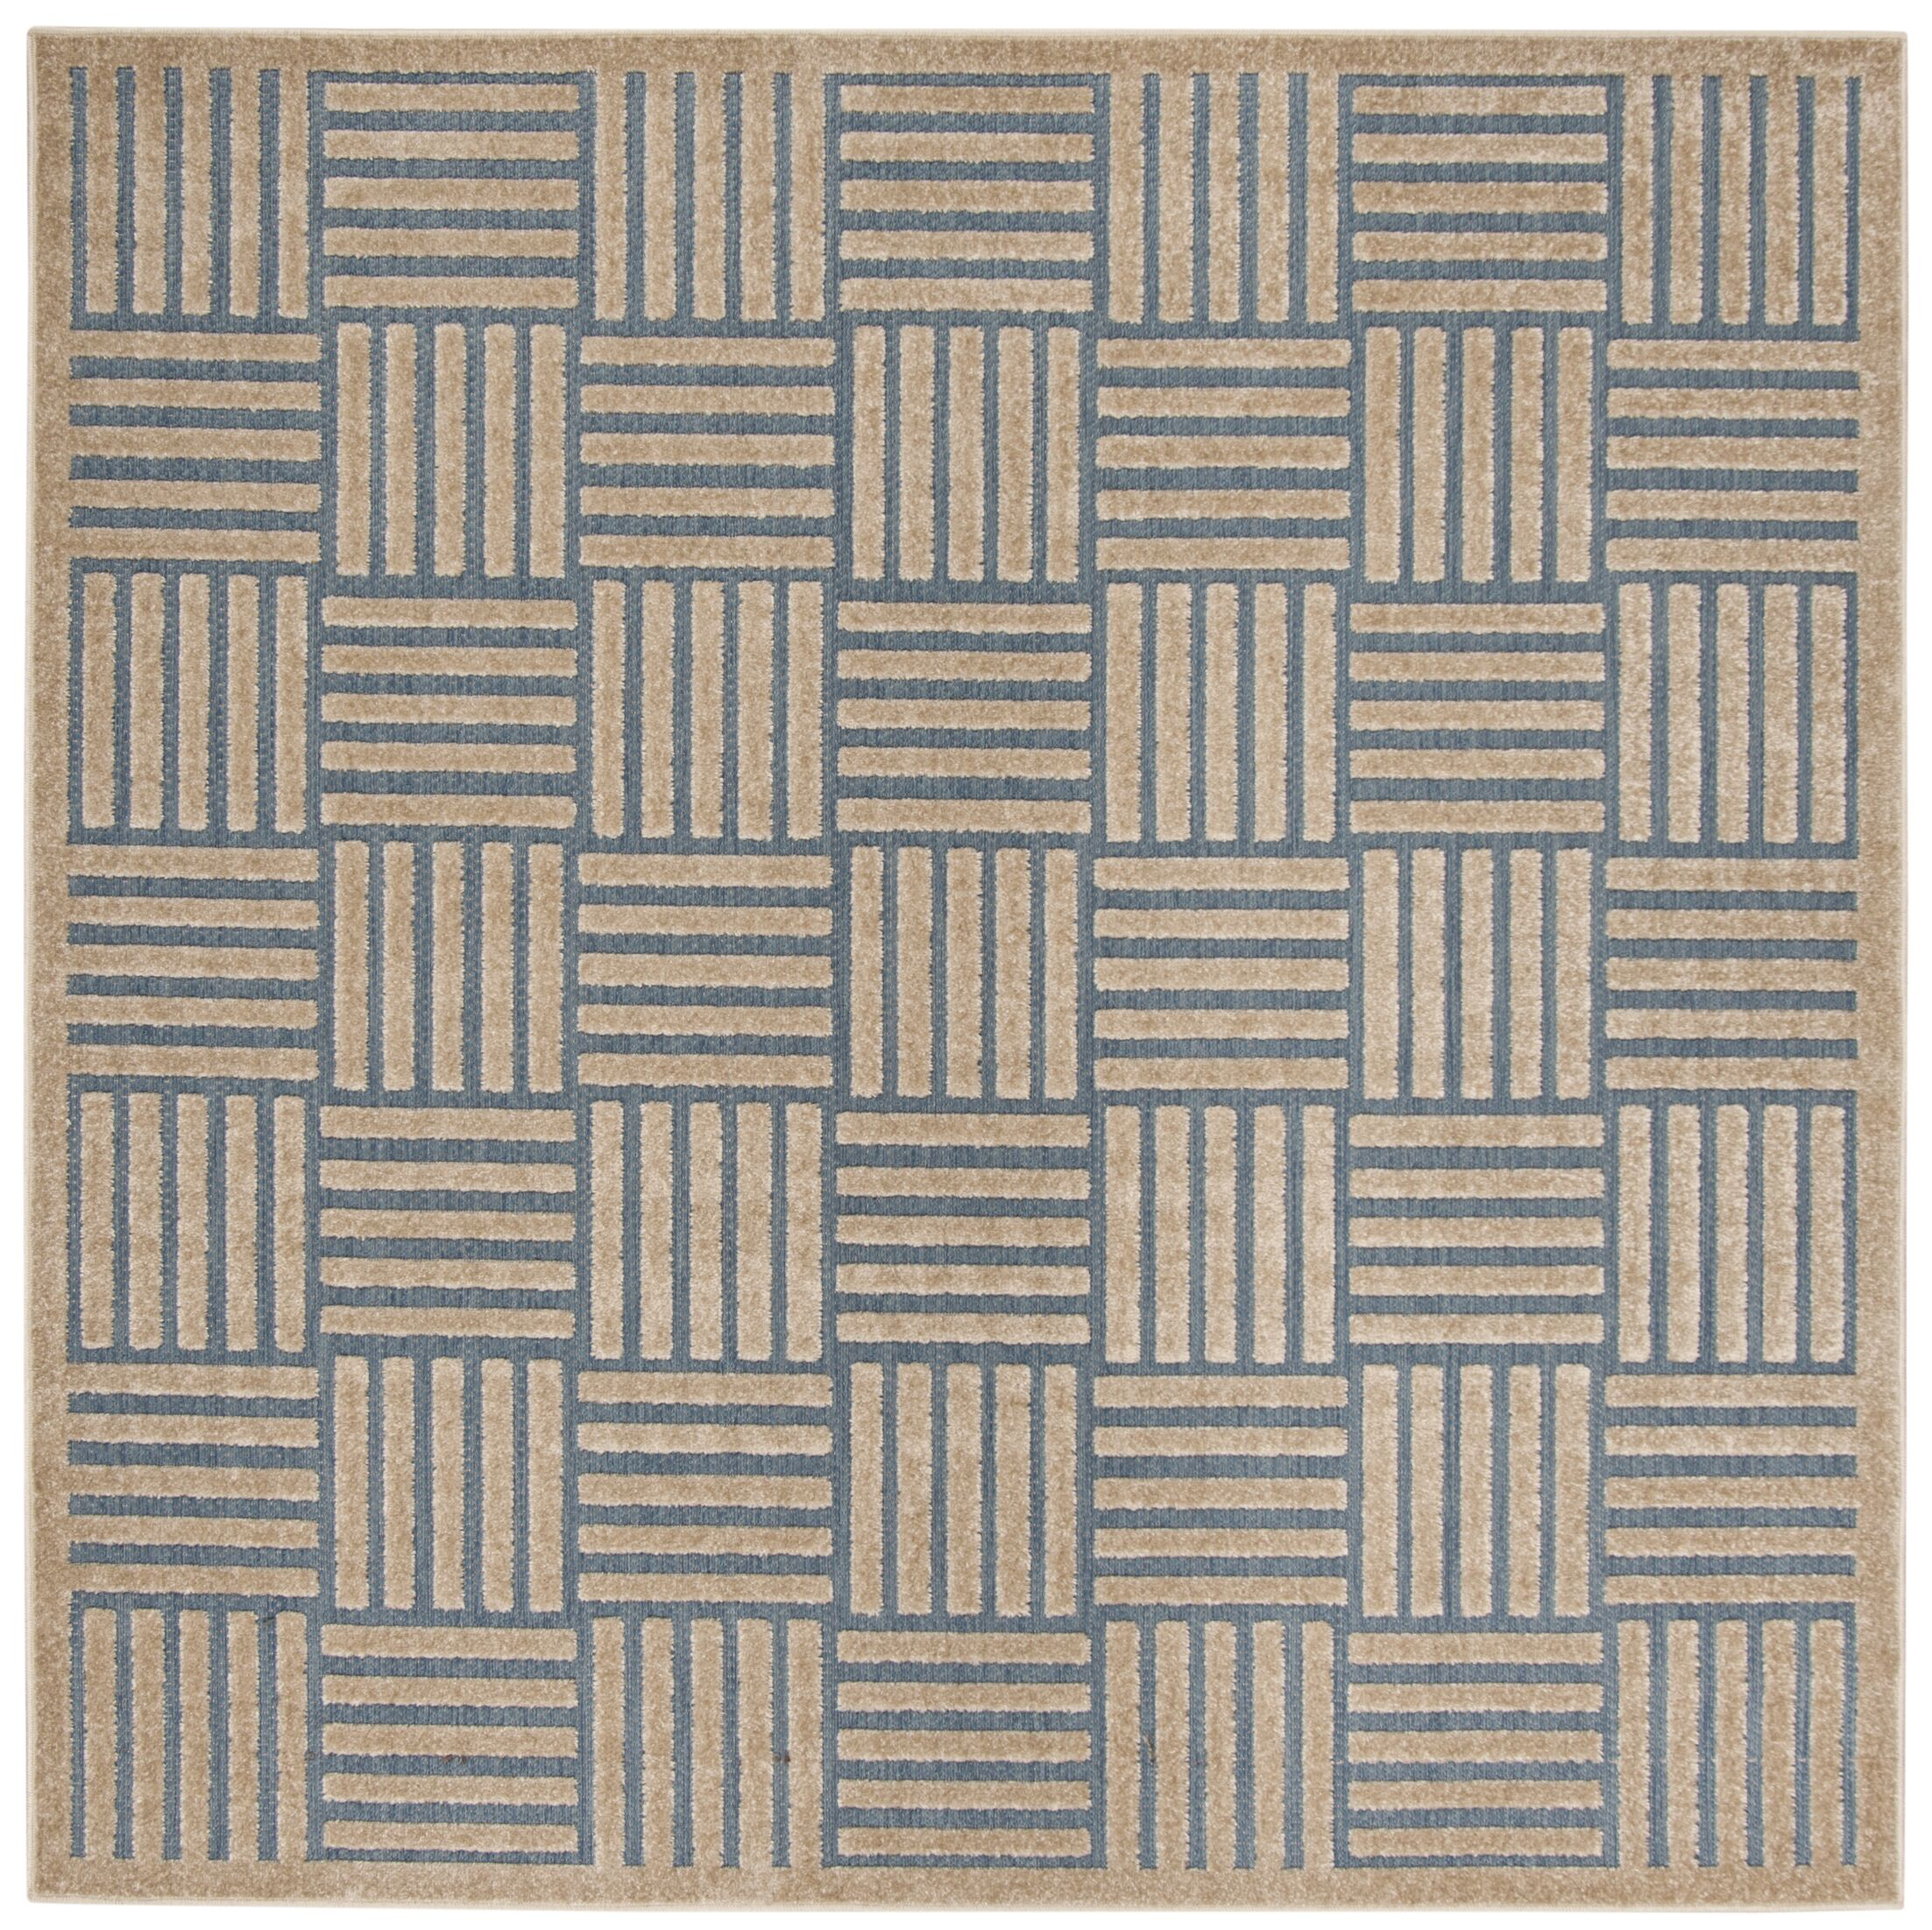 Zaniyah Brown Indoor/Outdoor Area Rug Rug Size: Square 6'7